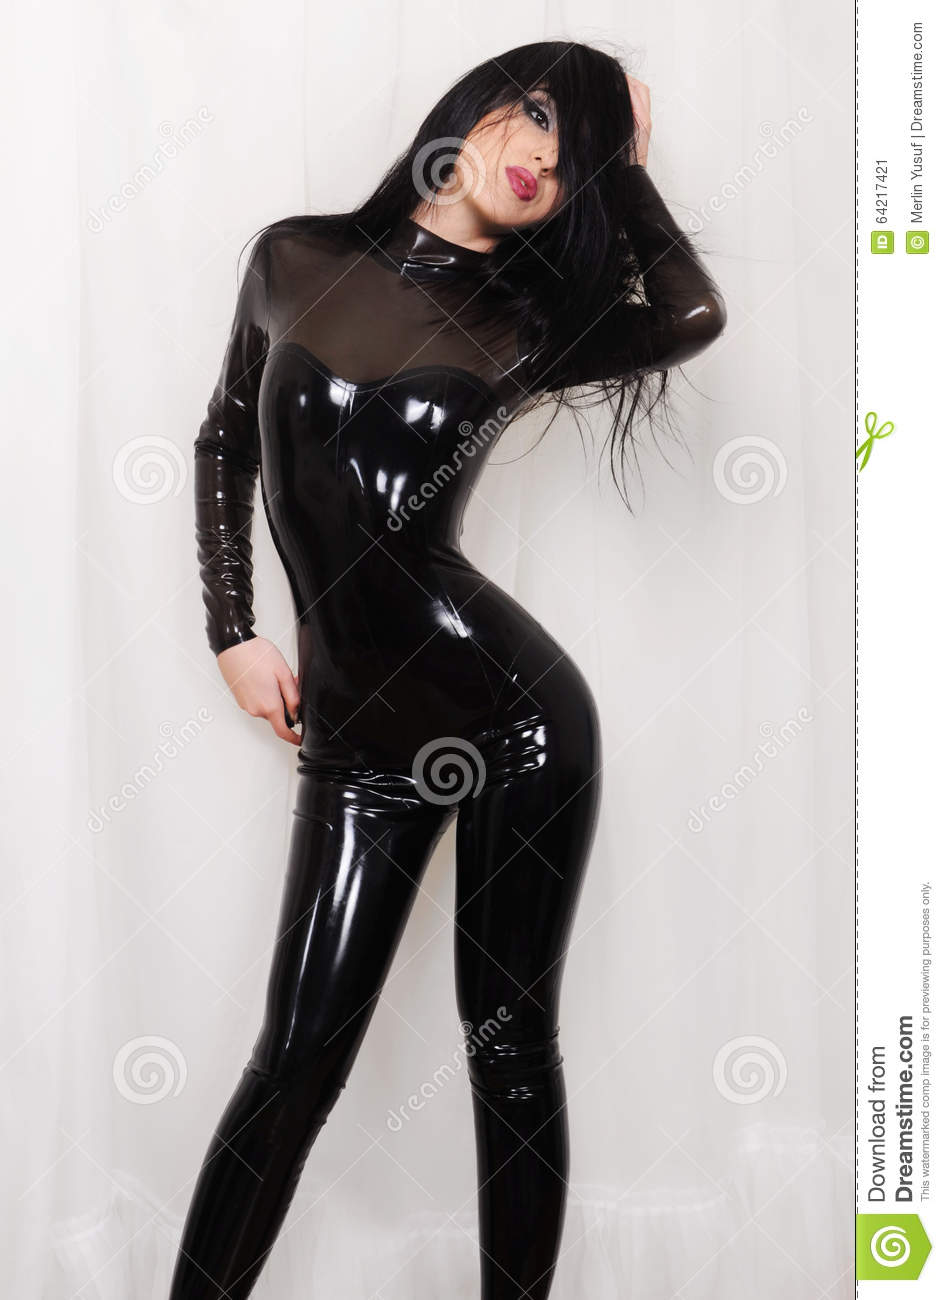 Wearing Latex Catsuit 80